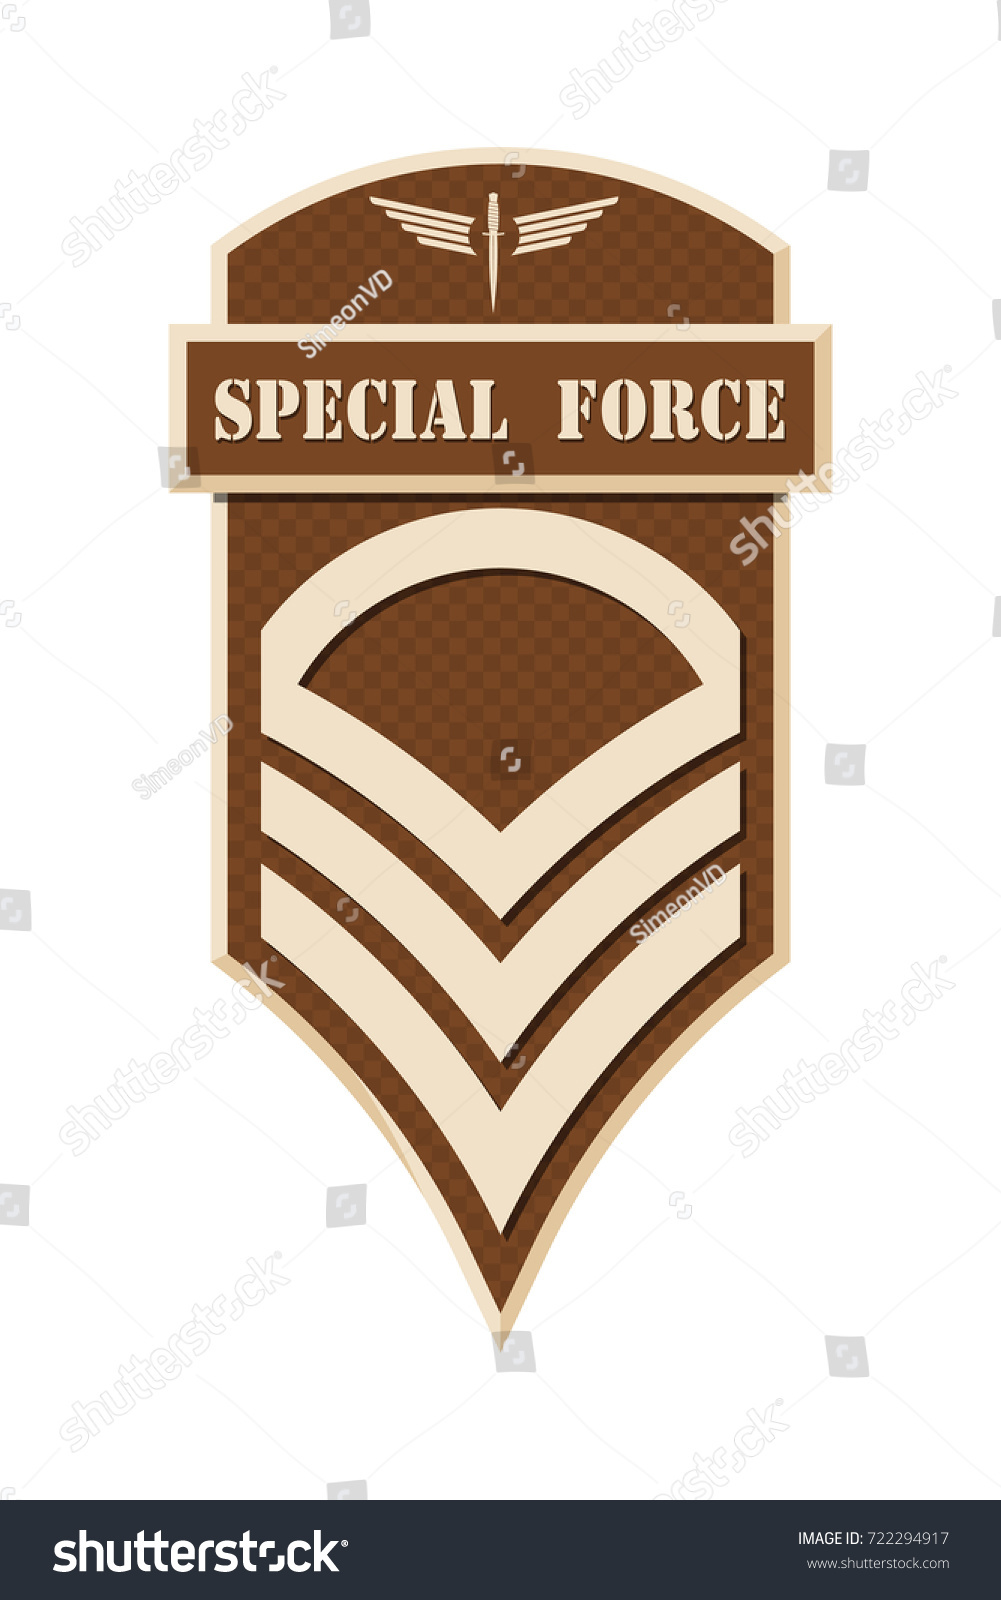 Military ranks insignia stripes chevrons army stock vector 722294917 military ranks and insignia stripes and chevrons of army staff sergeant biocorpaavc Images